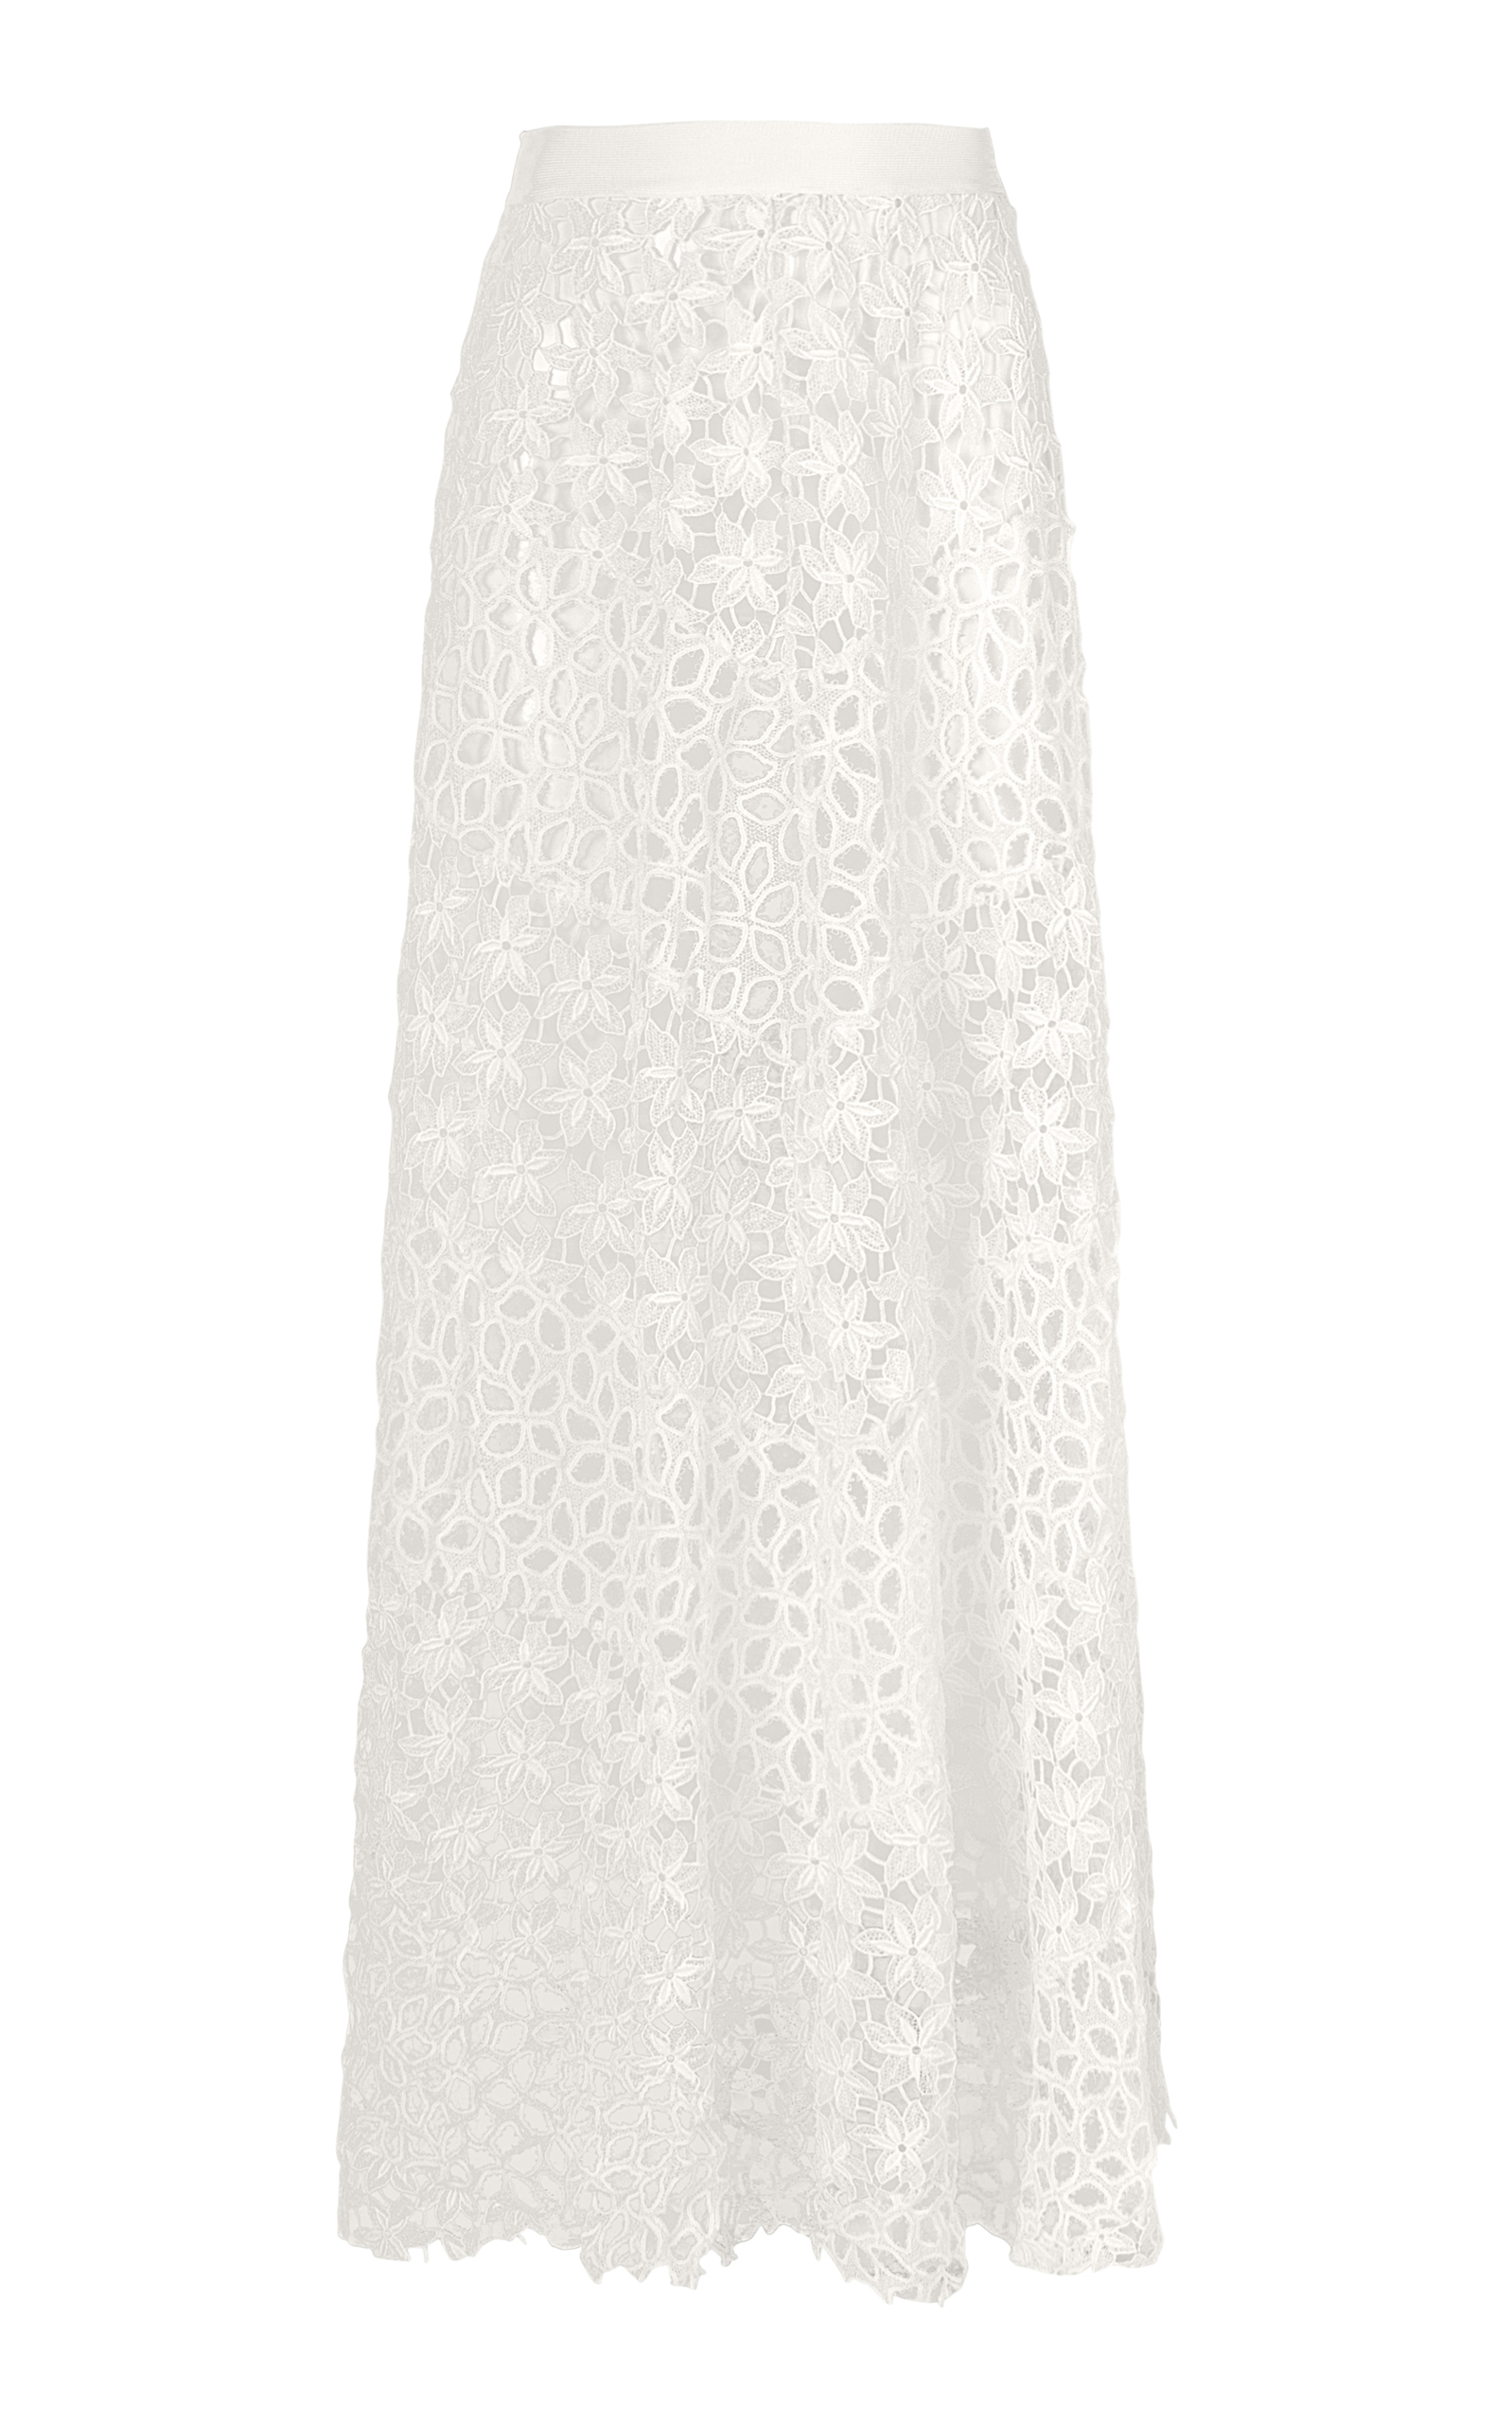 LOLITTA Louise Guipire Long Skirt in White